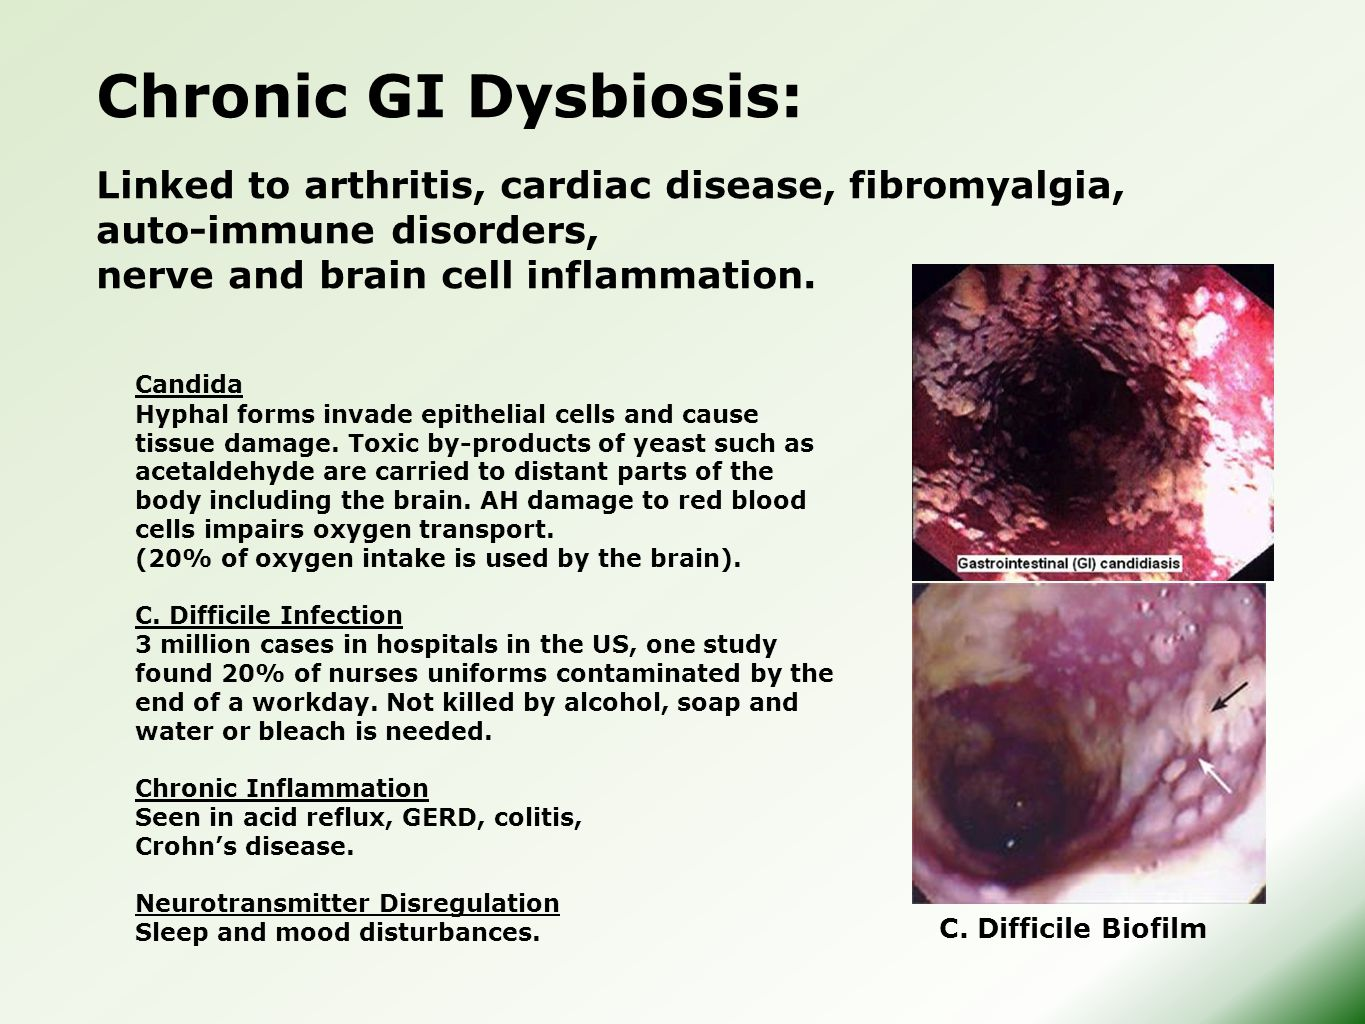 Chronic GI Dysbiosis: Linked to arthritis, cardiac disease, fibromyalgia, auto-immune disorders, nerve and brain cell inflammation.